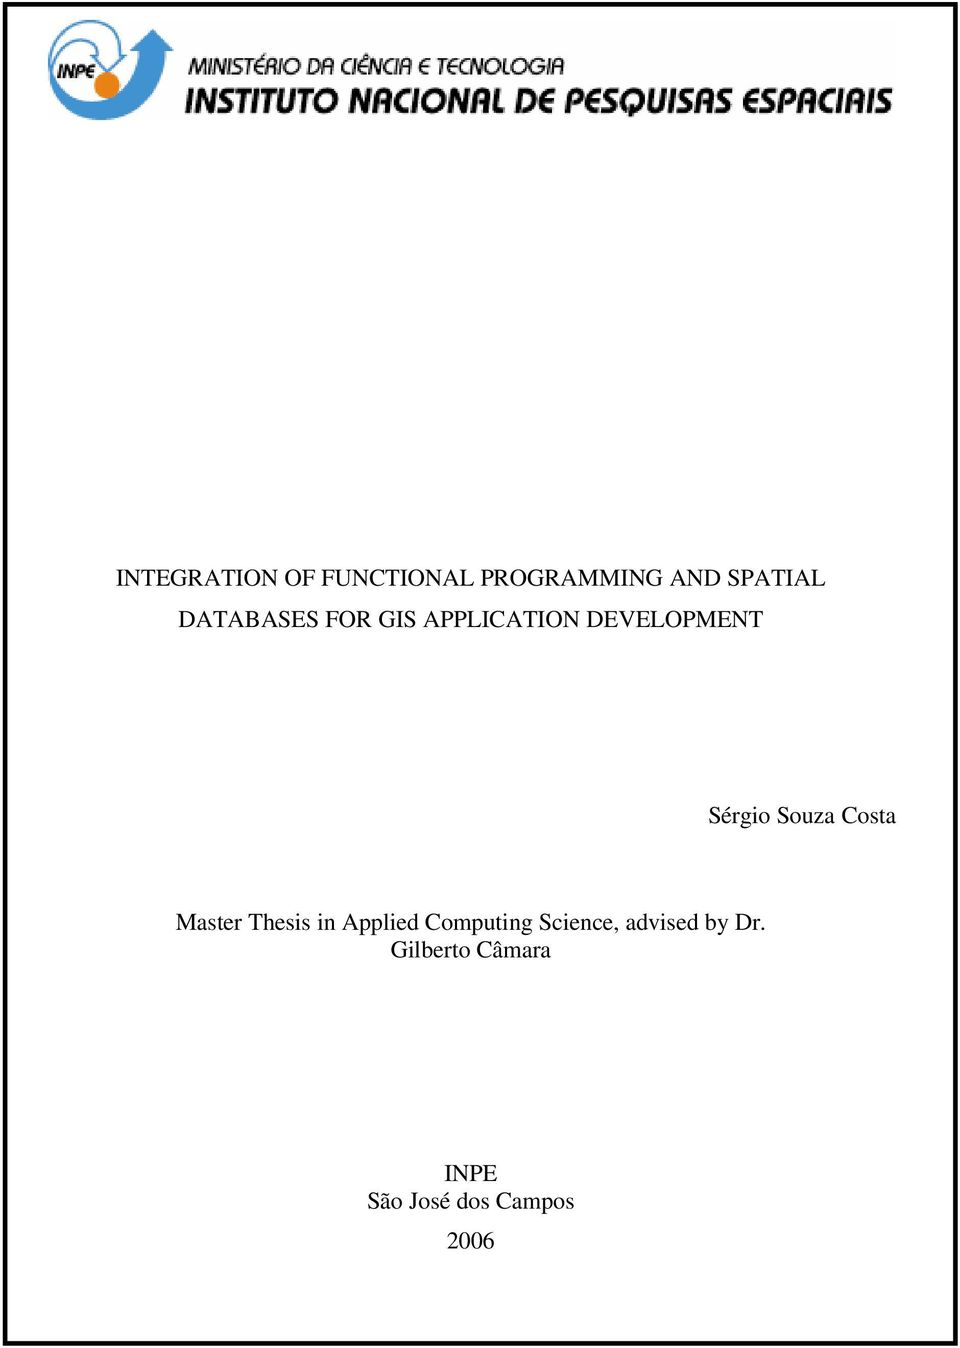 Souza Costa Master Thesis in Applied Computing